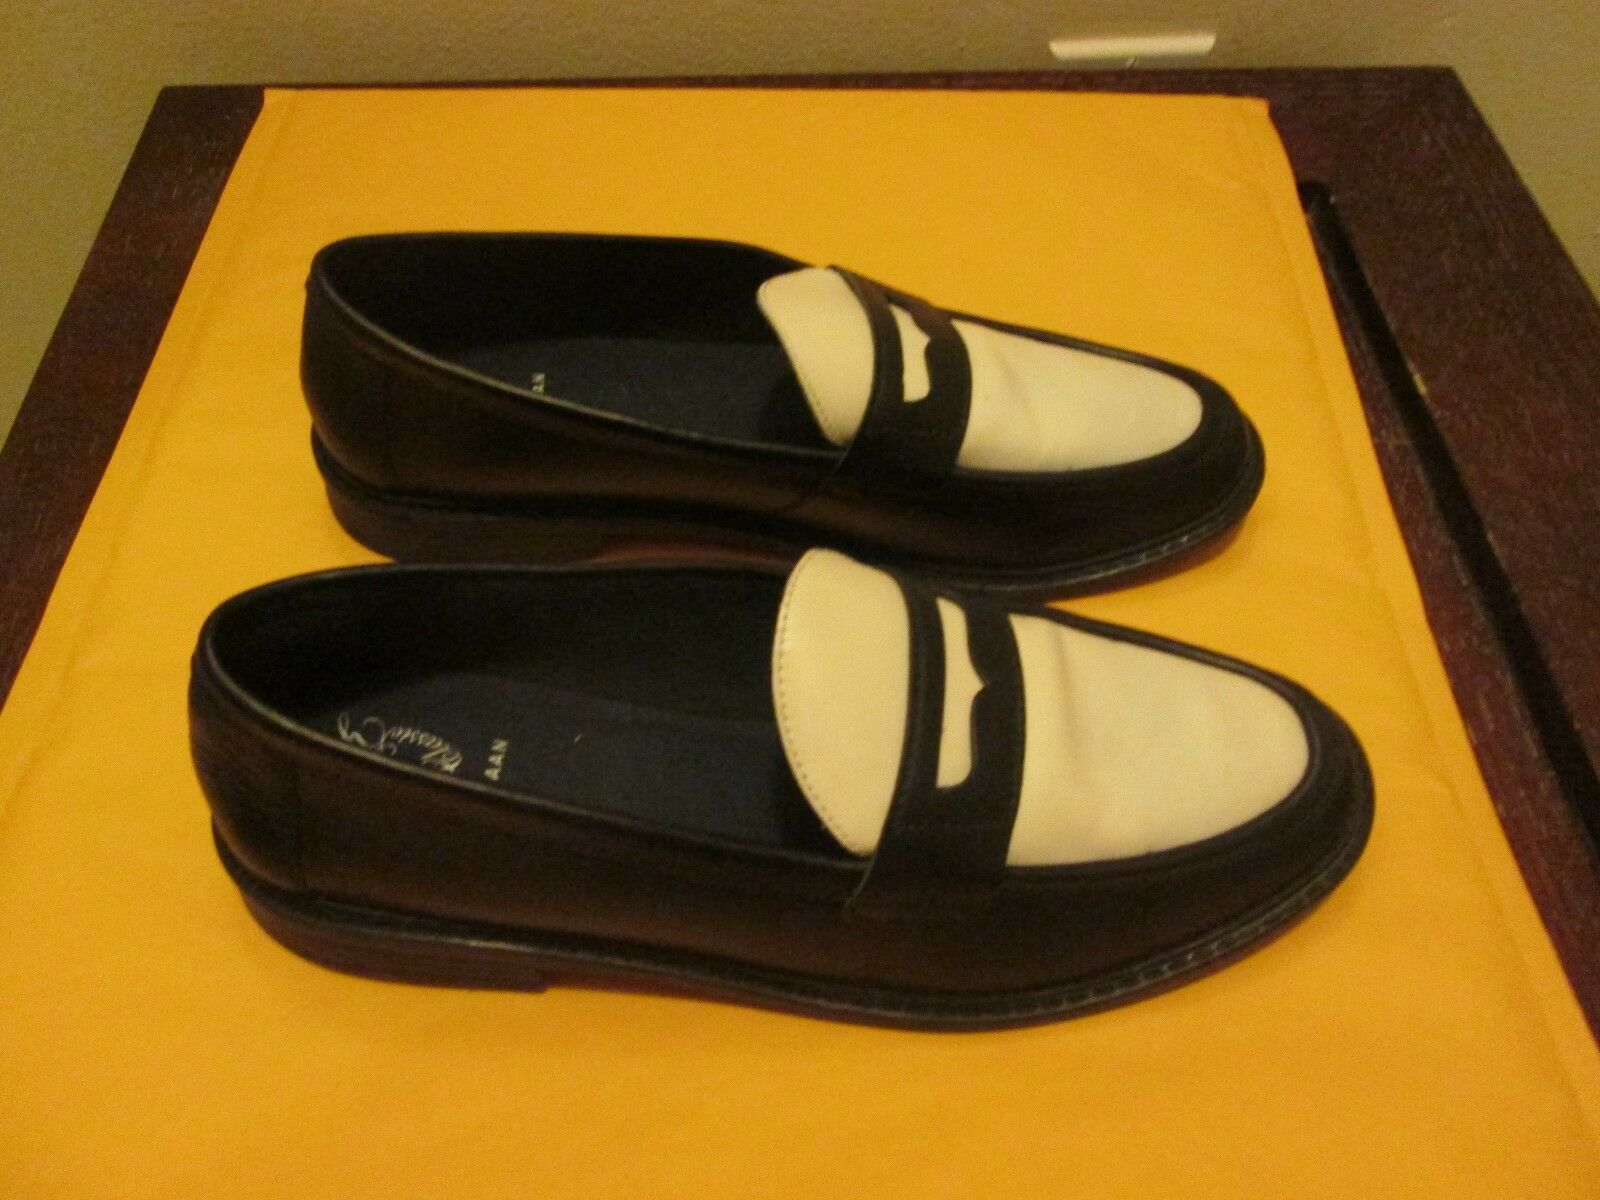 COLE HAAN WOMEN'S PINCH CAMPUS PENNY SHOE NEU IN BOX SIZE 8.5 BLACK & IVORY